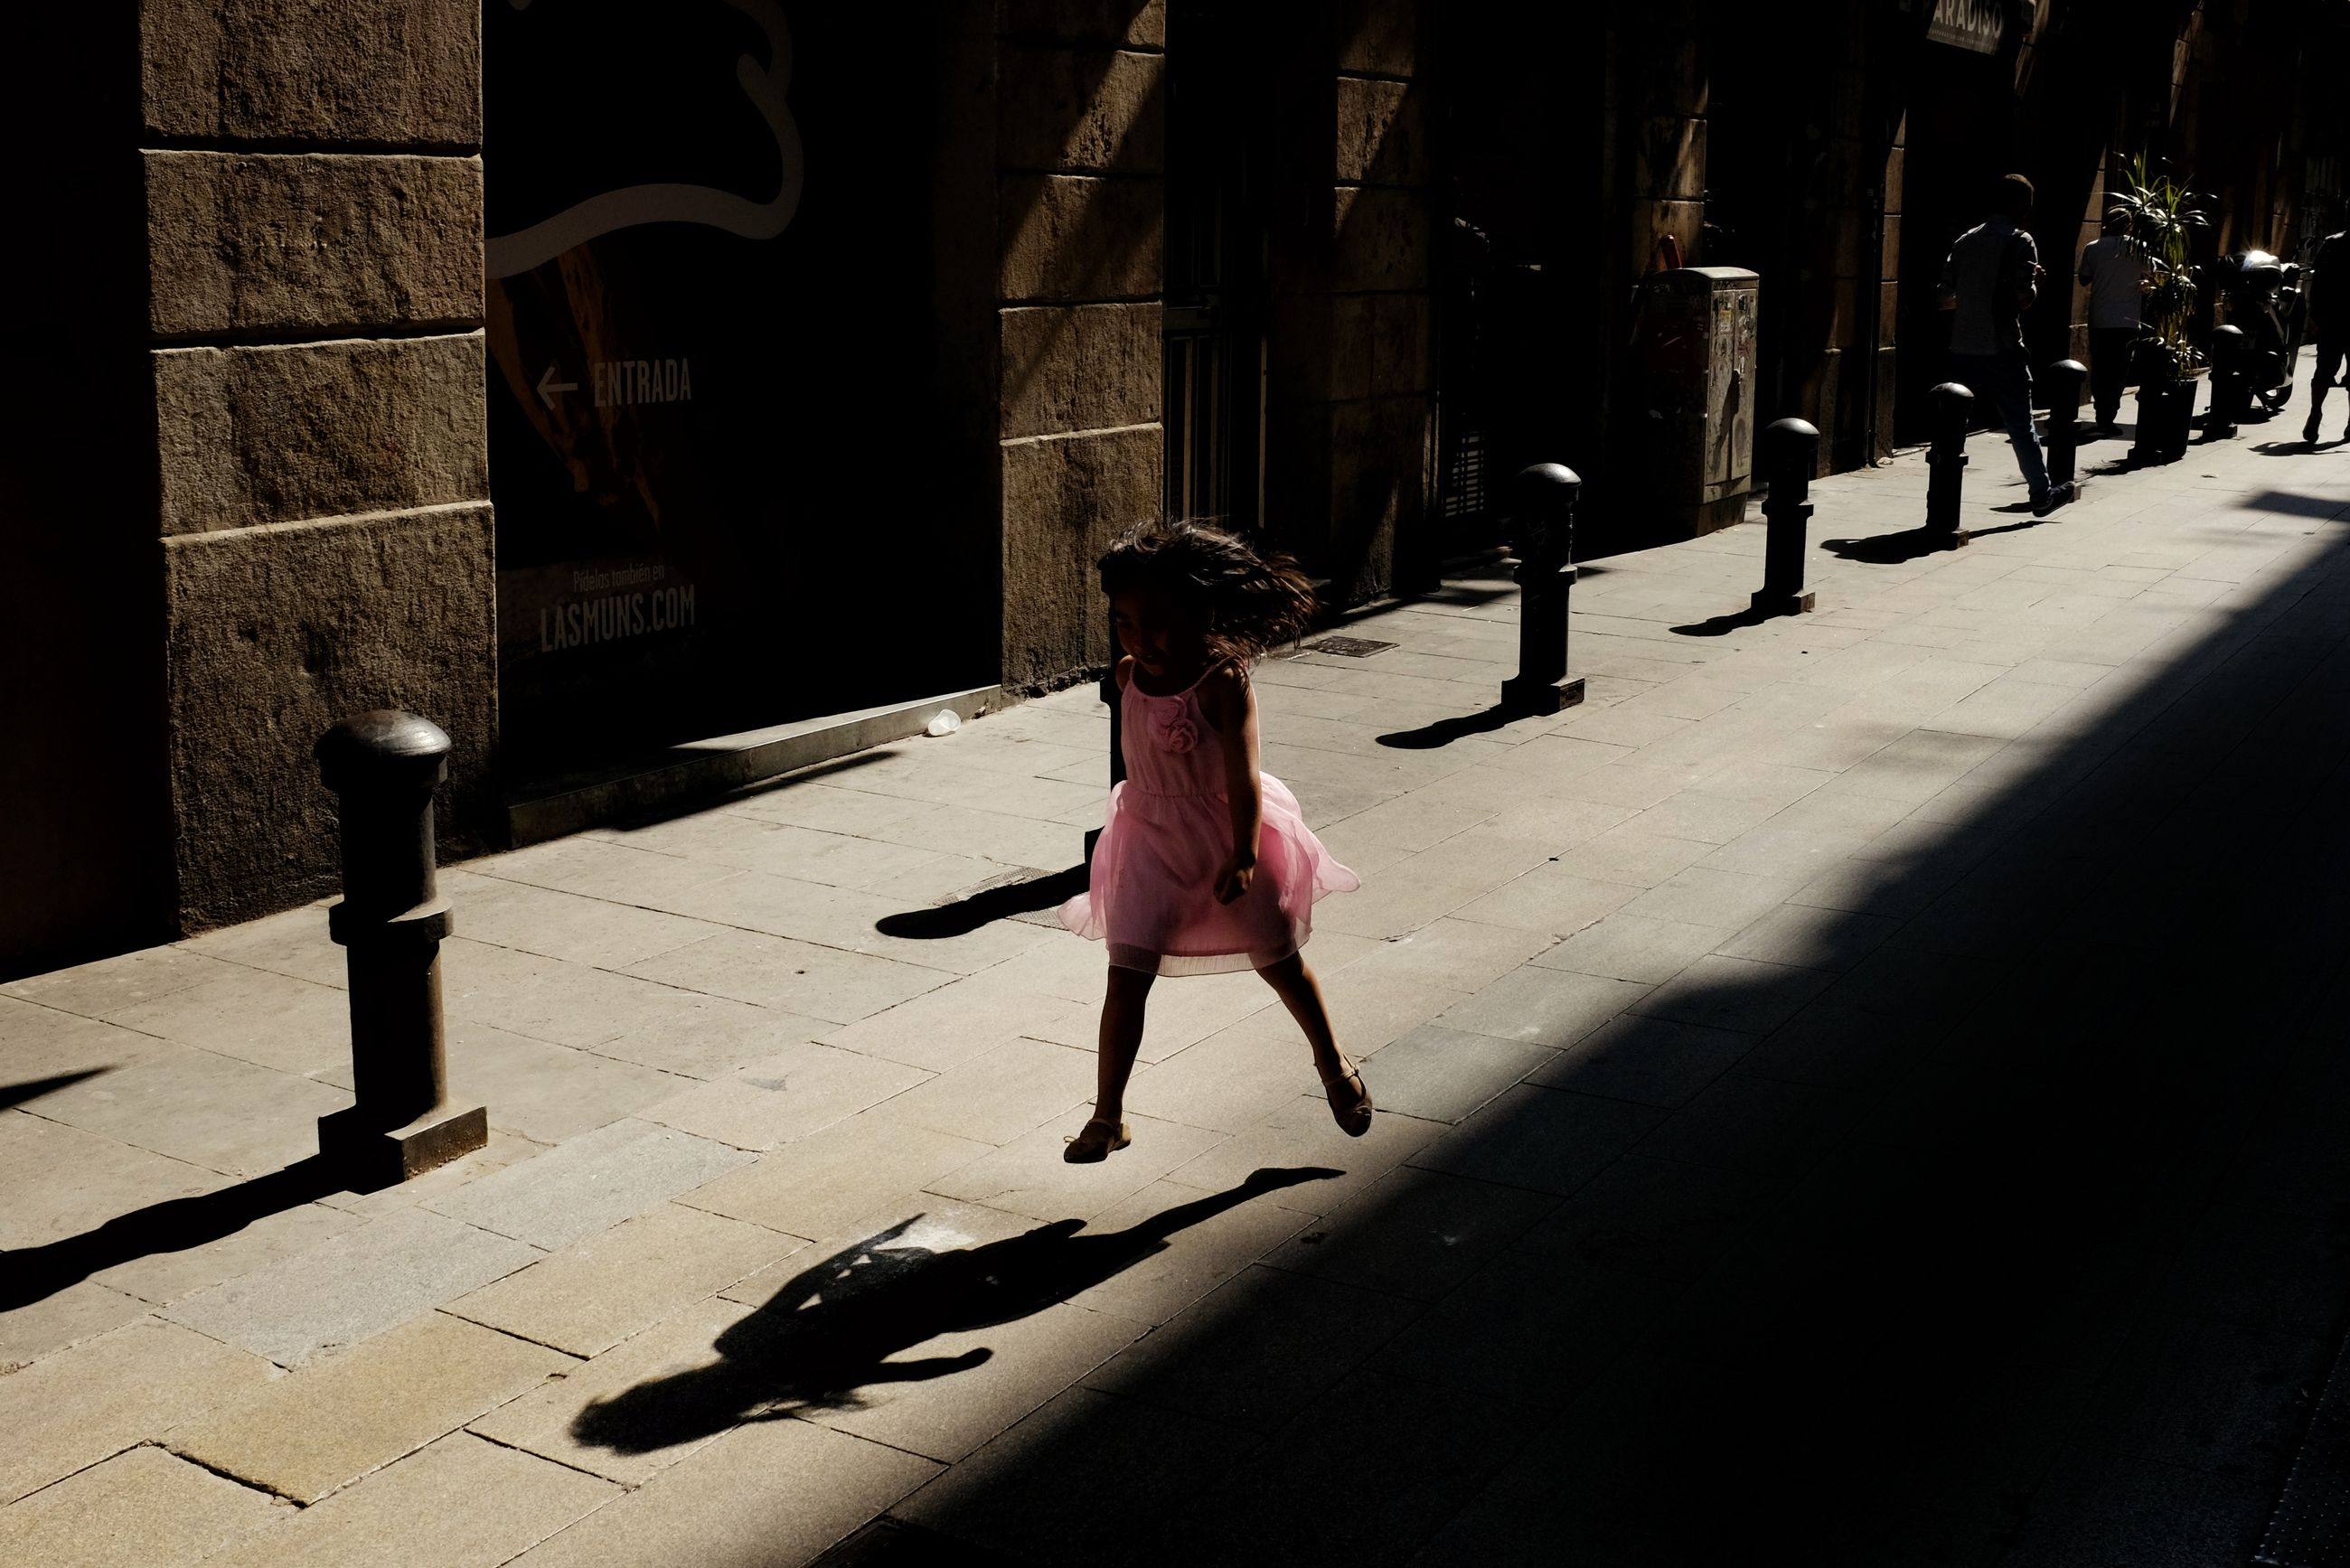 real people, one person, full length, built structure, architecture, walking, shadow, sunlight, outdoors, rear view, day, leisure activity, women, lifestyles, architectural column, building exterior, city, adult, people